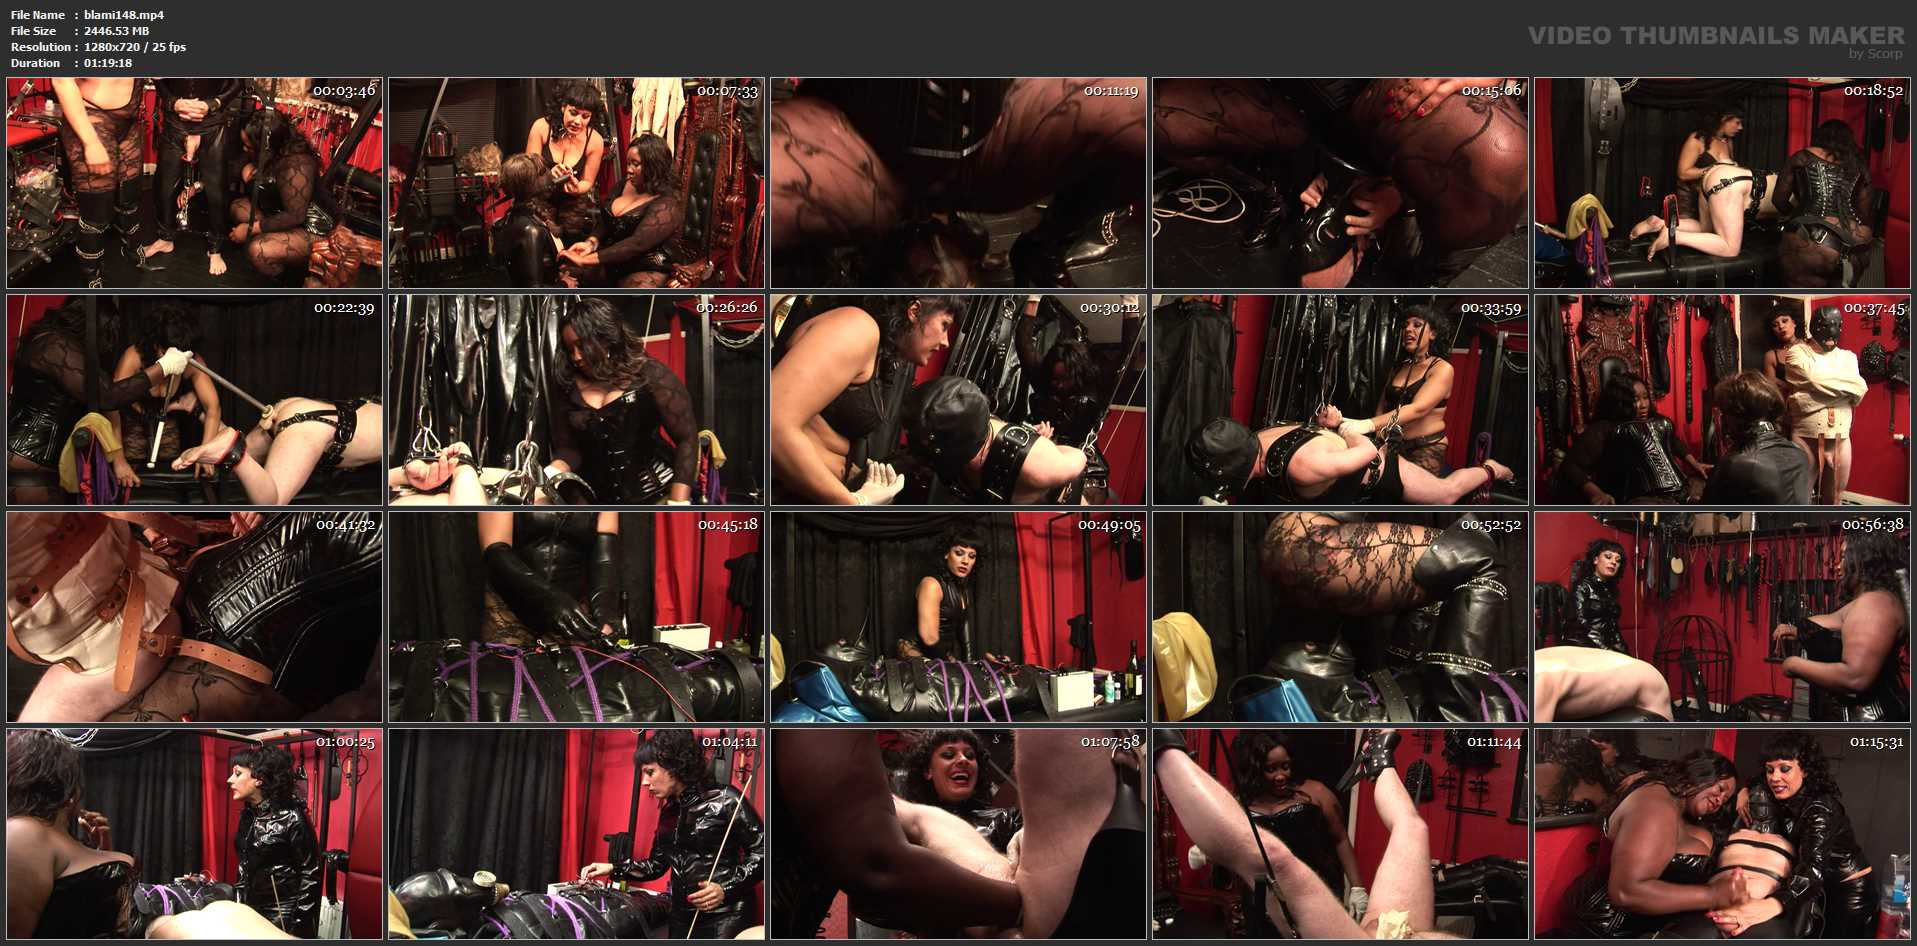 MISTRESS ROUGE, MADAME CARAMEL In Scene: Madame Caramel and Mistress Rouge - BLACK-MISTRESSES - HD/720p/MP4